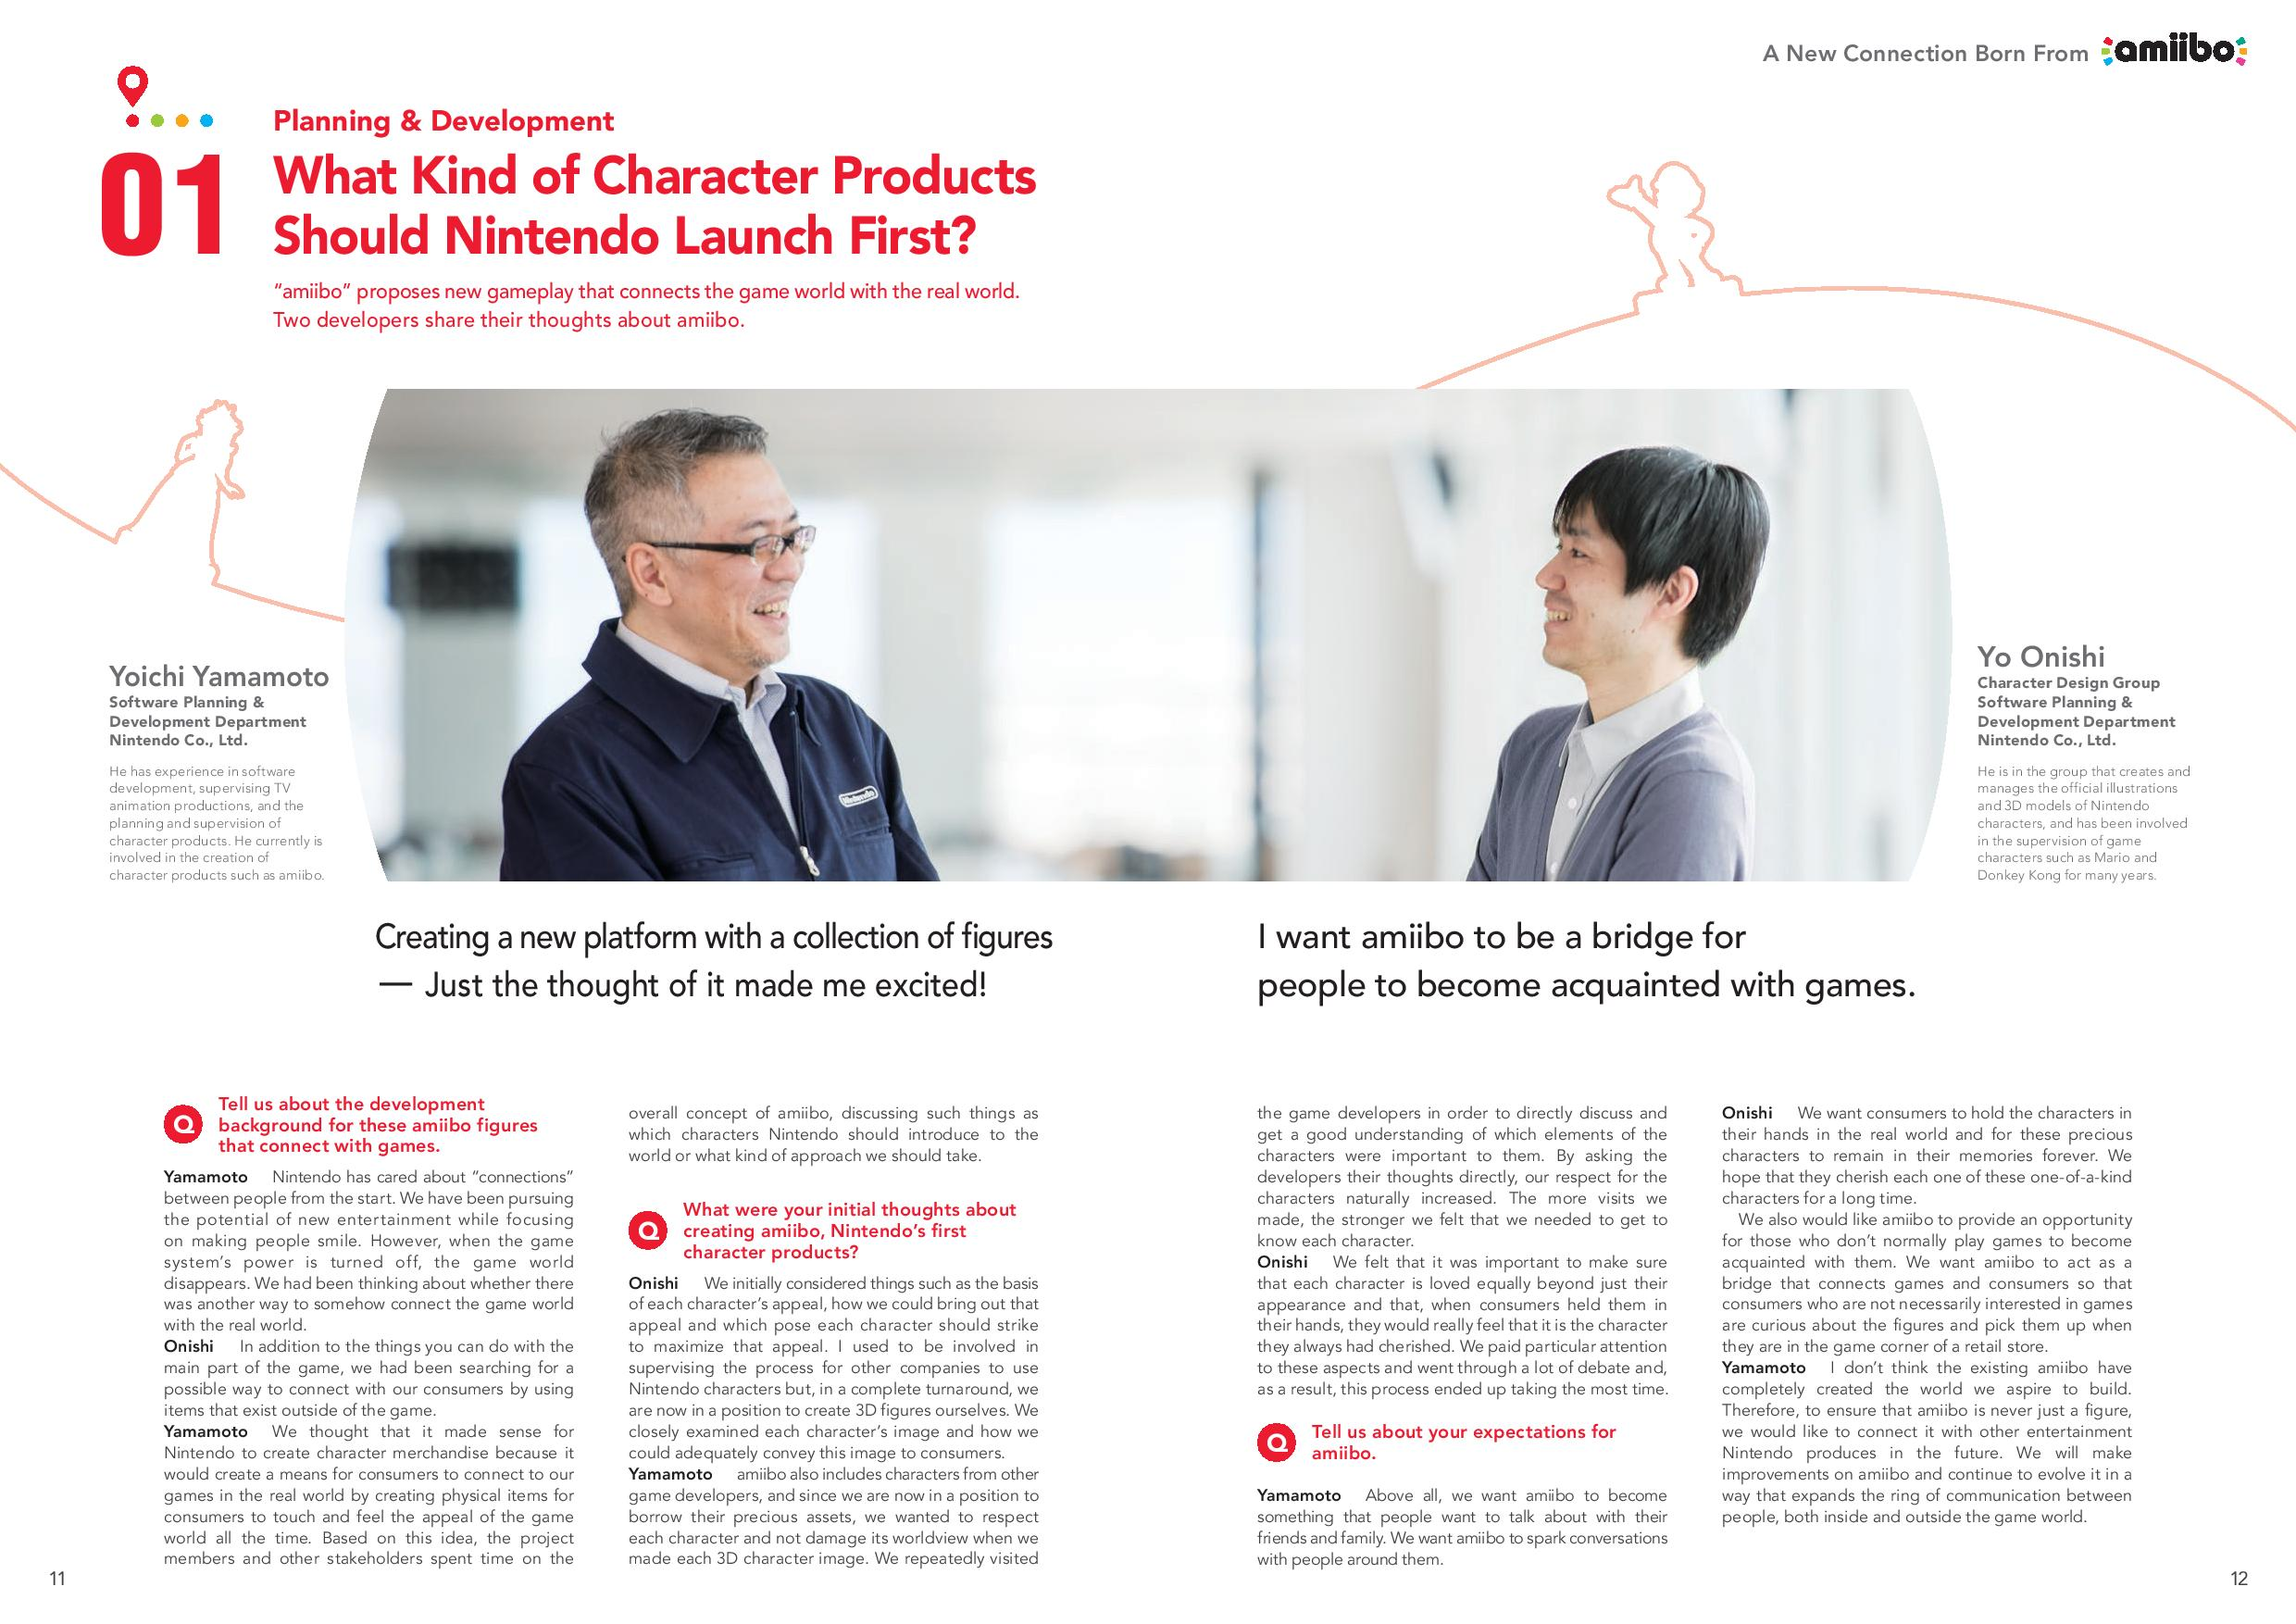 nintendo csr activities Toyota motor corporation introduces csr basic philosophy business and manufacturing have an impact on people and the environment global website of toyota motor corporation - company information, ir information, environment / social activities.